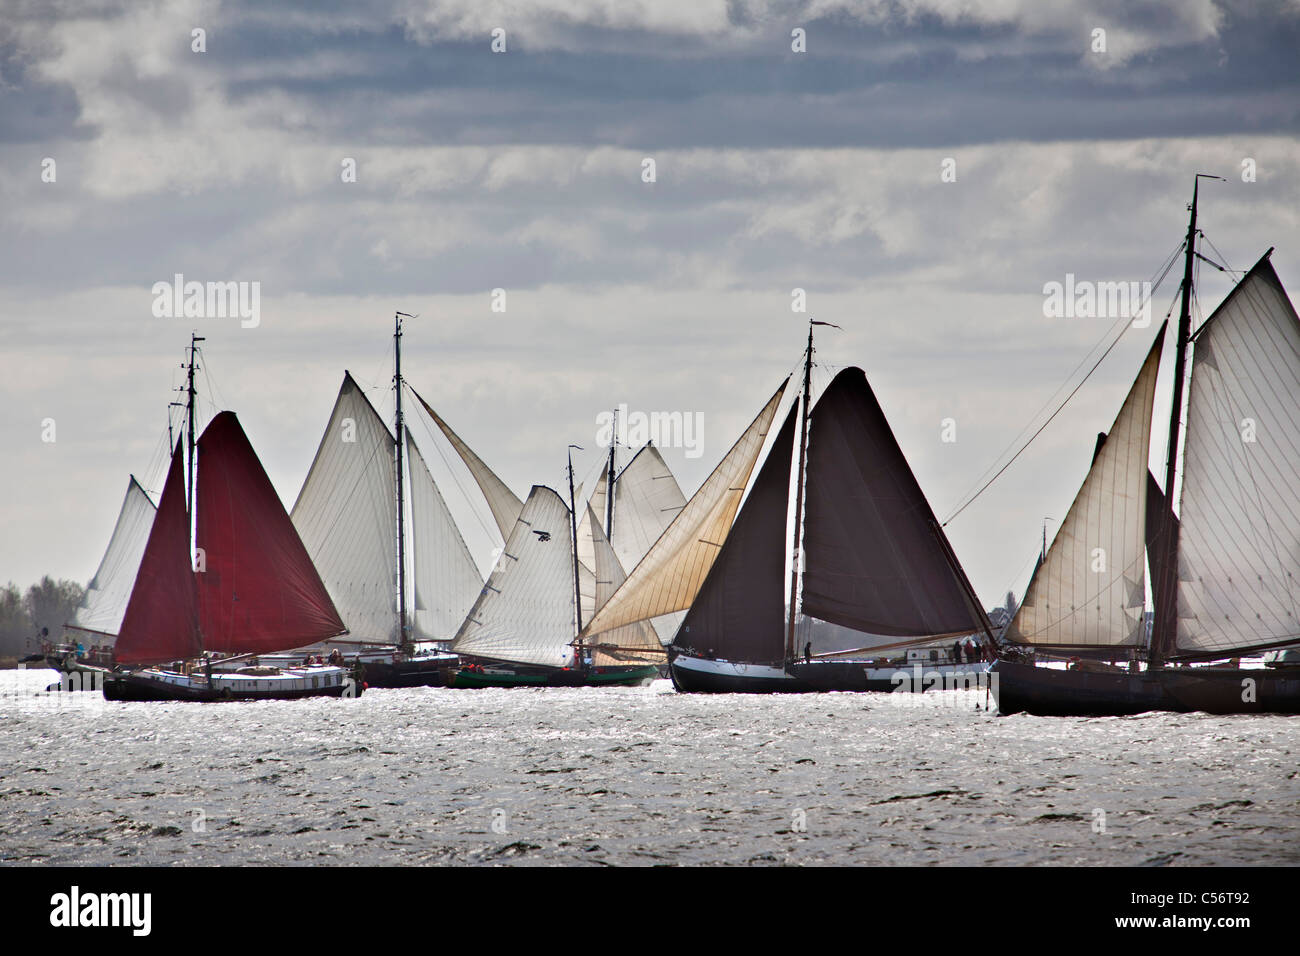 The Netherlands, Volendam. Yearly race of traditional sailing ships called Pieperrace on lake called Markermeer. - Stock Image